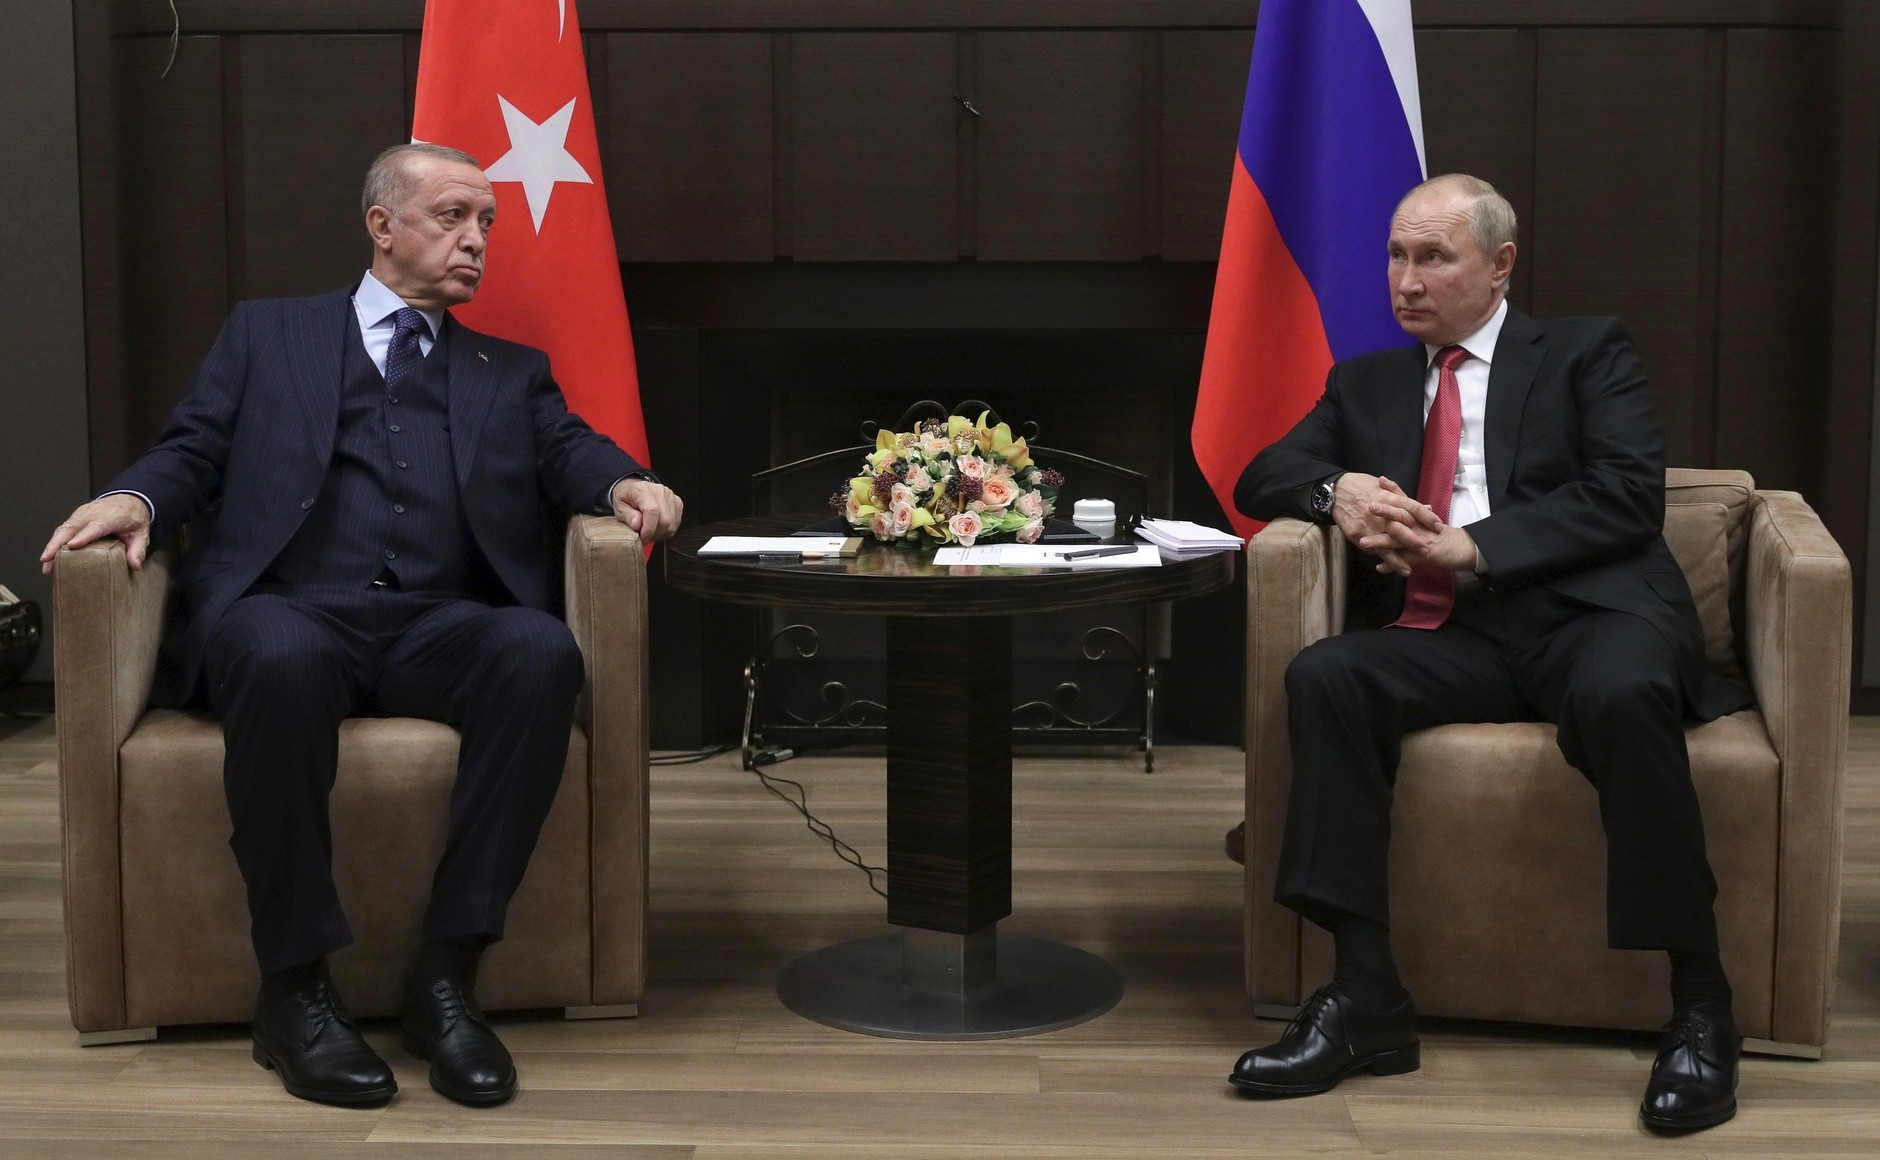 Sochi Meeting: Russia and Turkey Still Divided Over Syria